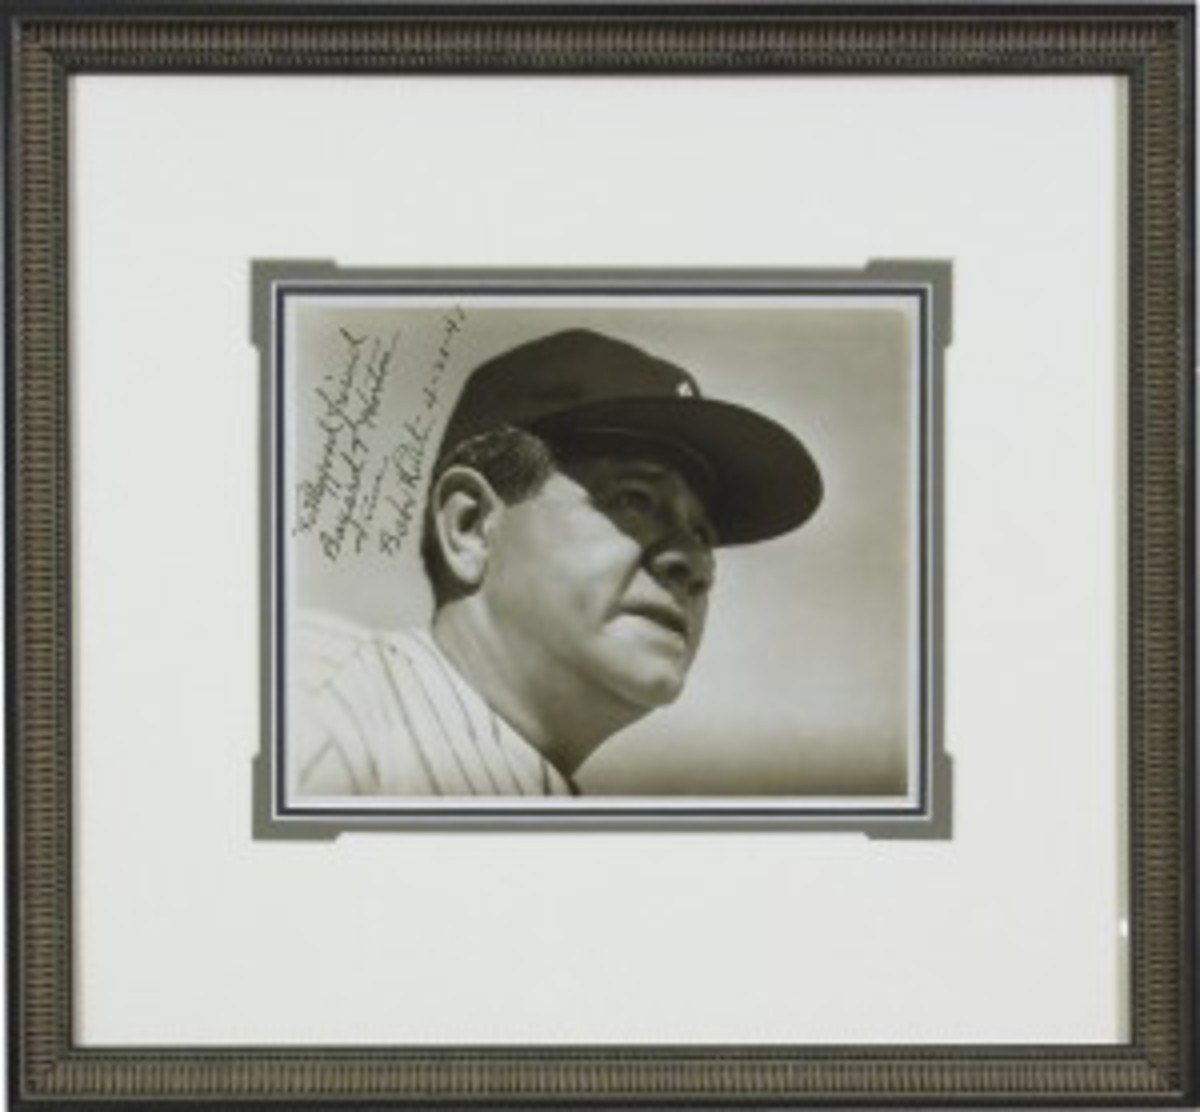 MLBabe Ruth Autographed Image